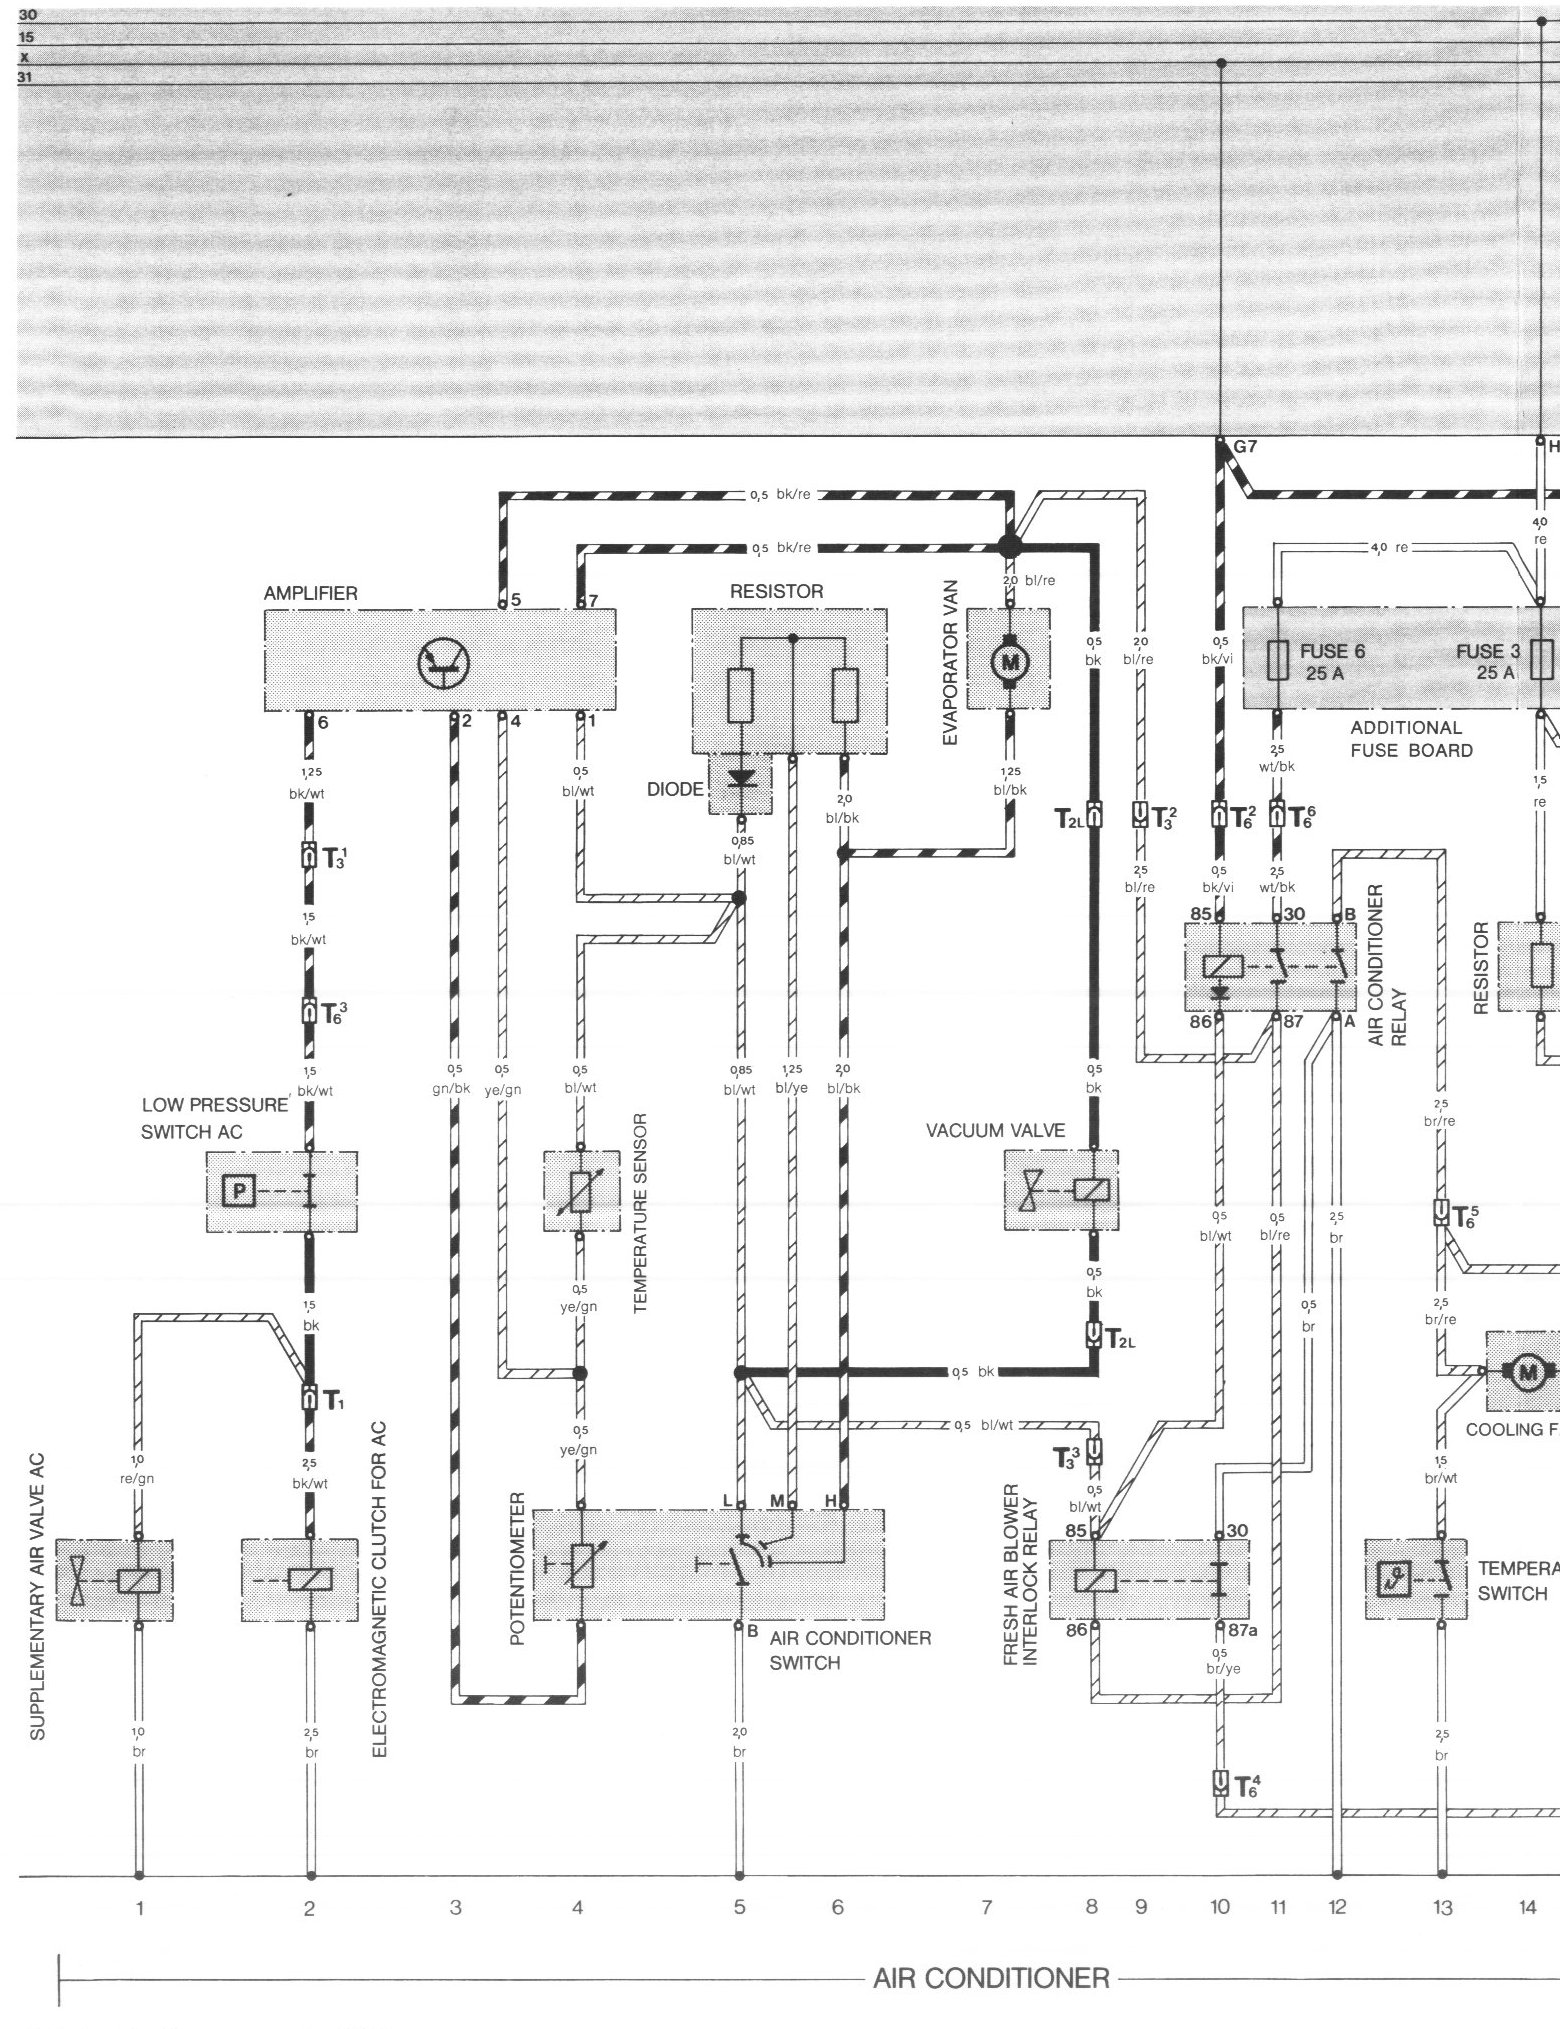 porsche 944 wiring harness diagram | meet-timetab wiring diagram ran -  meet-timetab.rolltec-automotive.eu  rolltec-automotive.eu